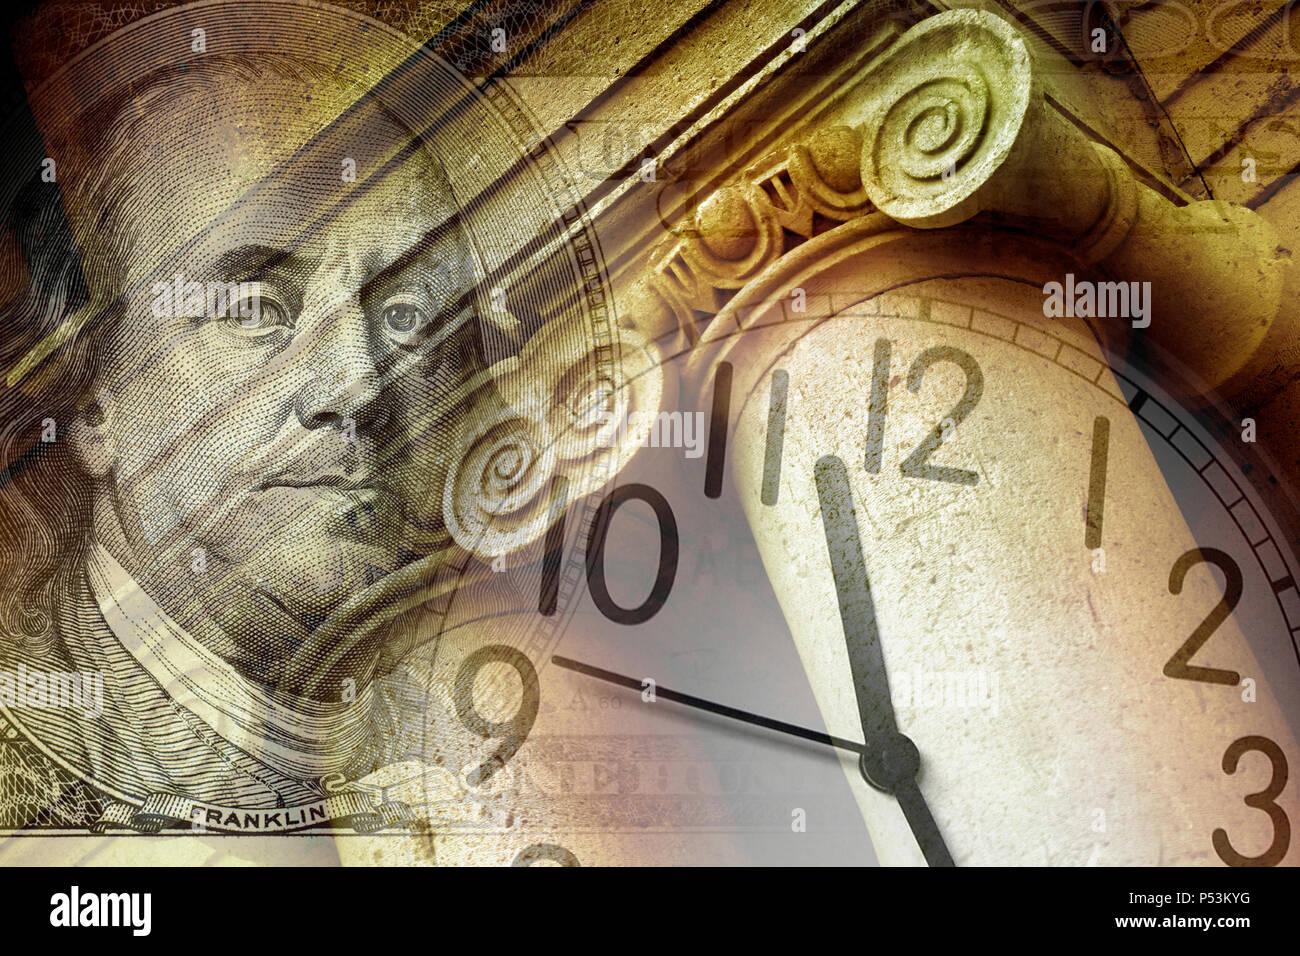 conceptual image of a clock on dollar bill and column - Stock Image